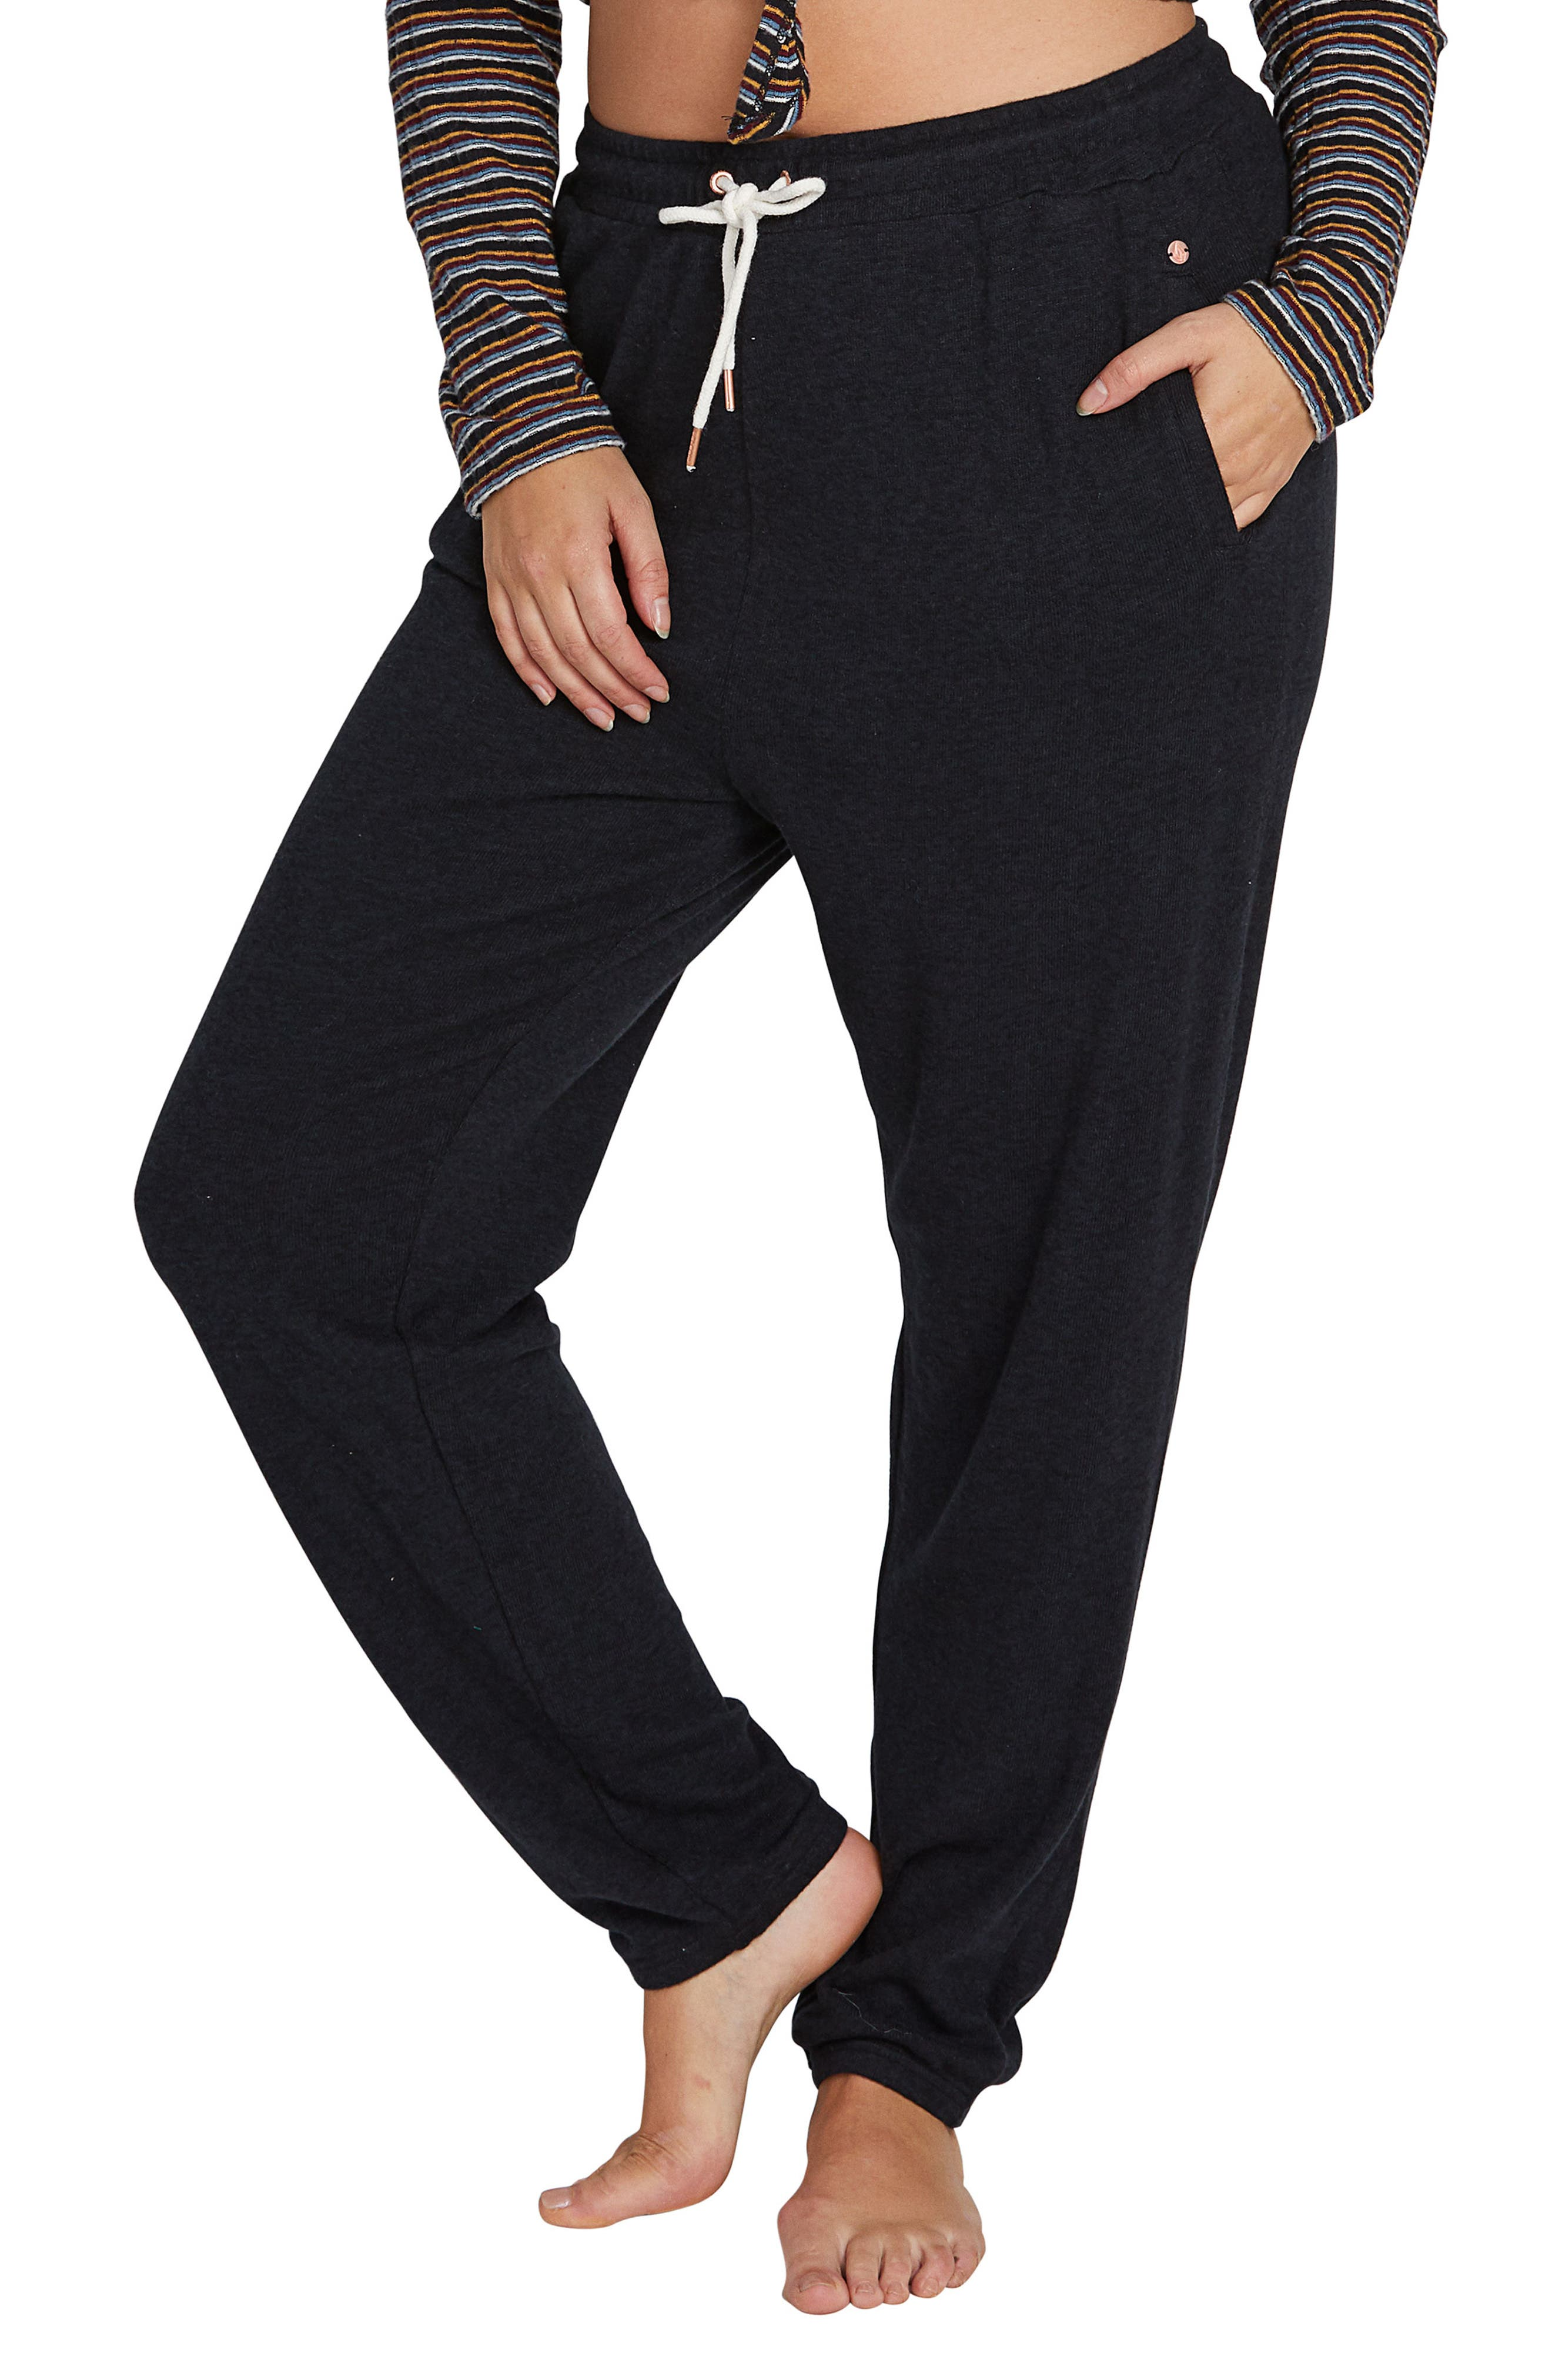 Whether you\\\'re relaxing or running errands, these easy fleece pants with a comfy drawstring waist are what you\\\'ll reach for. Style Name: Volcom Lil Fleece Pants (Plus Size). Style Number: 5775297. Available in stores.